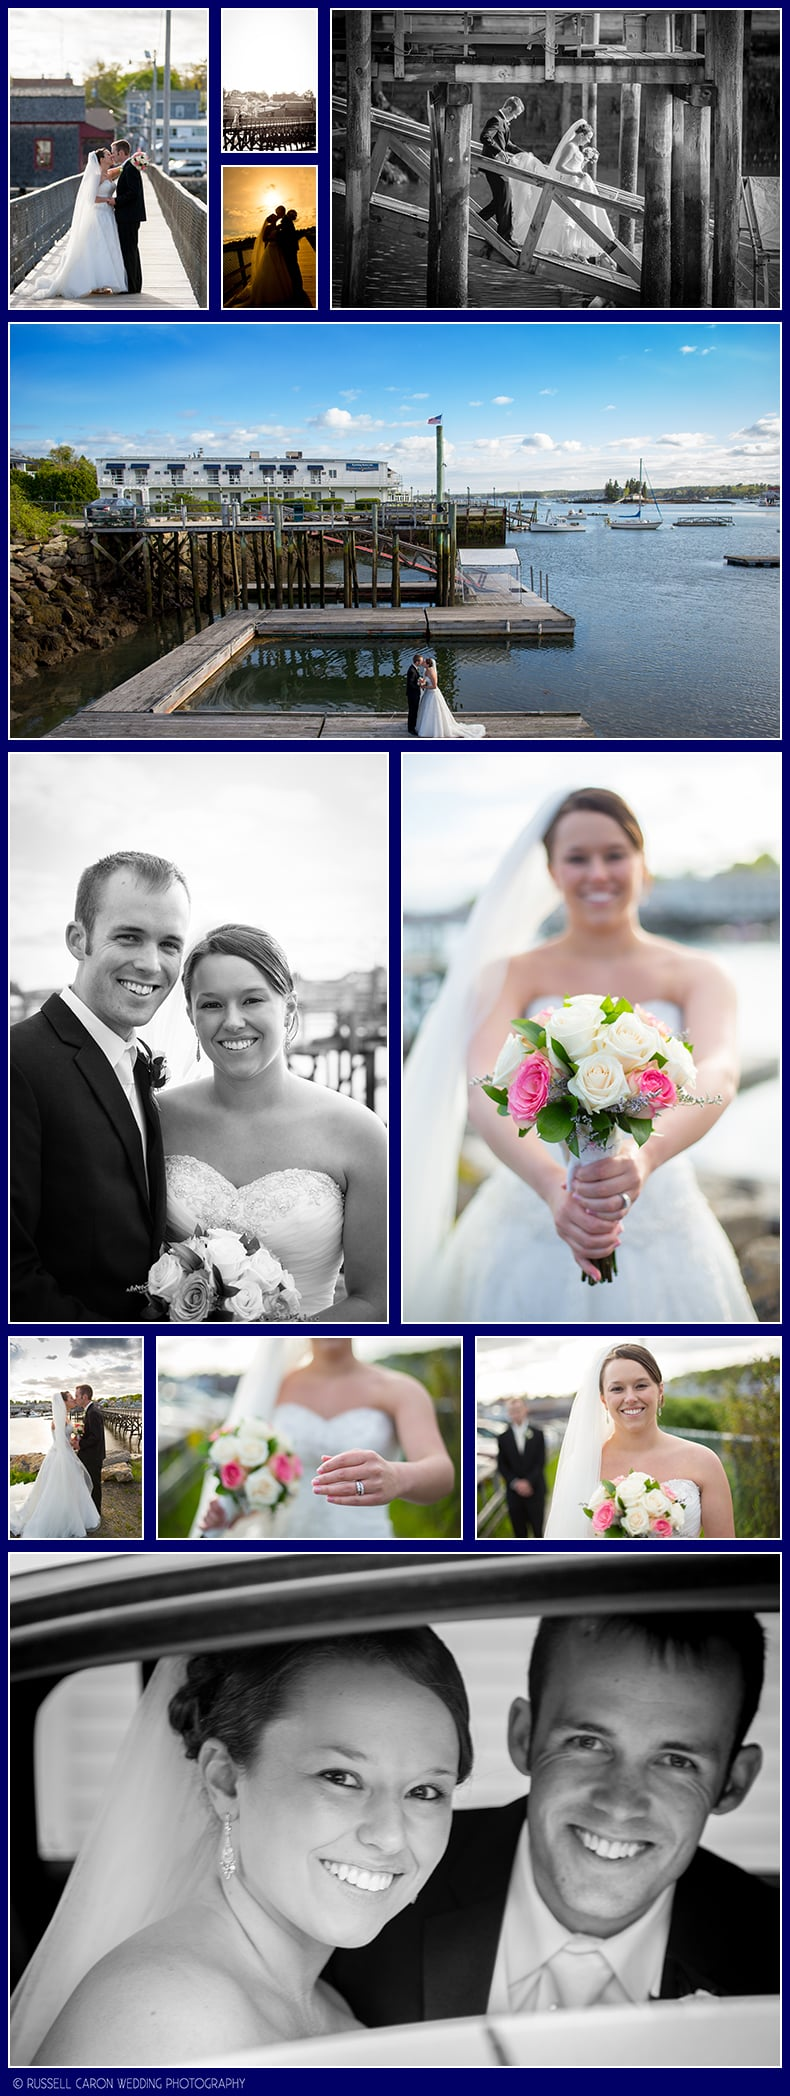 Bride and groom photos in Boothbay Harbor